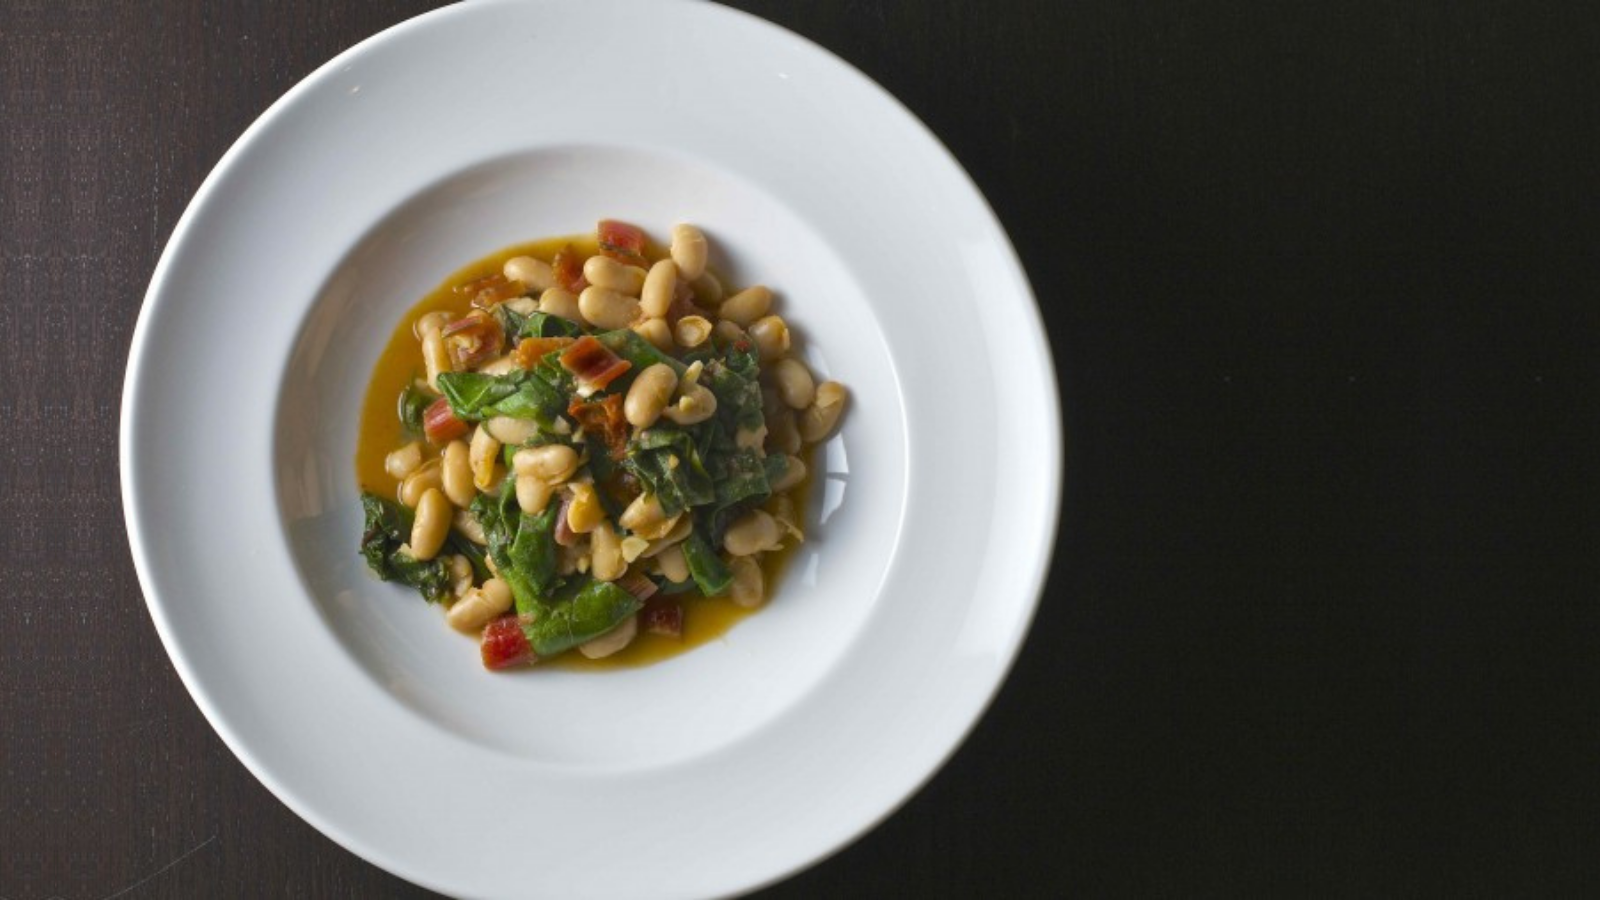 Warm and delicious healthy recipe for chard and white bean ragout perfect for cold winter nights